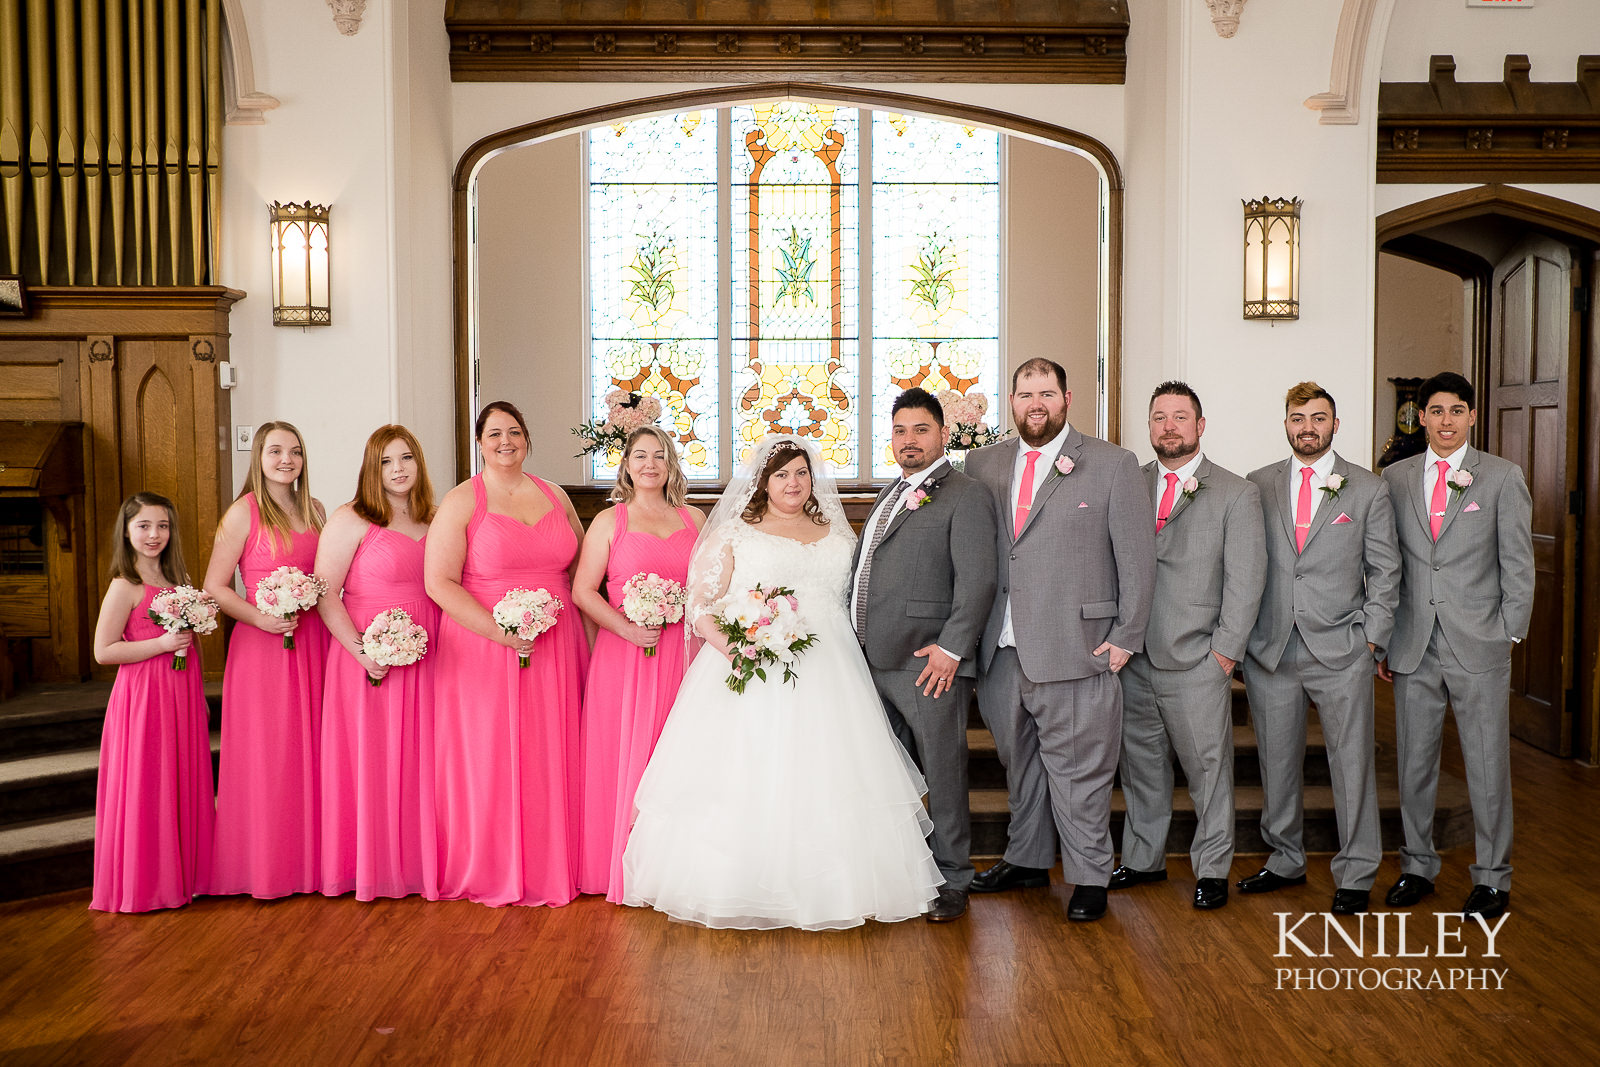 054 - Westminster Chapel - Rochester NY wedding photo - Kniley Photography.jpg